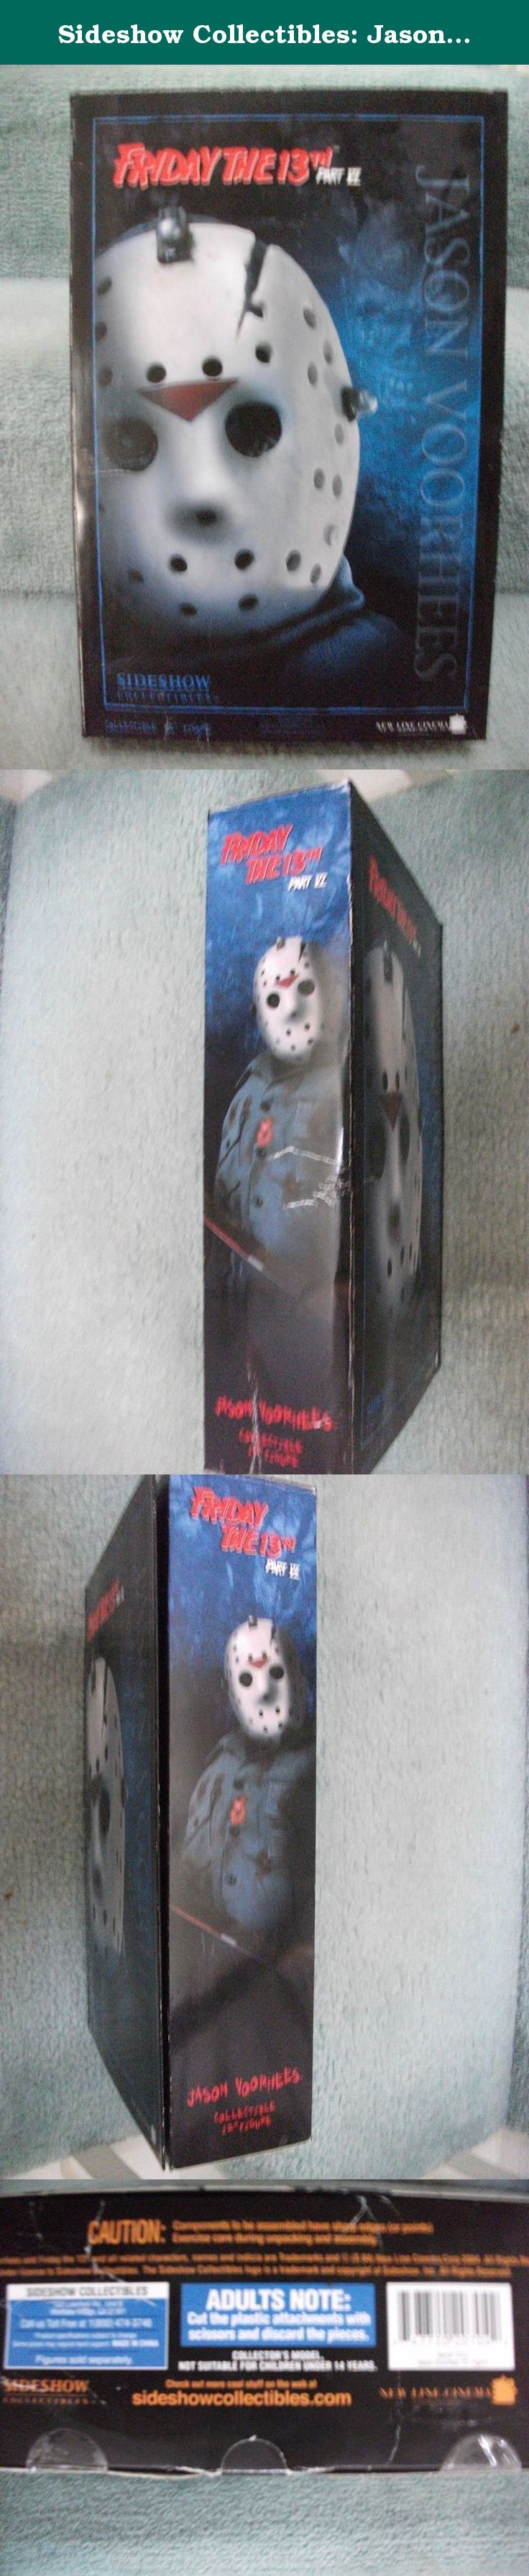 """Sideshow Collectibles: Jason Voorhees Friday The 13th VI Jason Lives 12"""" Action Figure. Sideshow toy limited edition Jason Voorhess from Friday the 13th Part VI 6. This is the best one yet. It comes with the Hockey mask and Jason looks like he has been in the ground awhile. A must for any Jason Fan."""